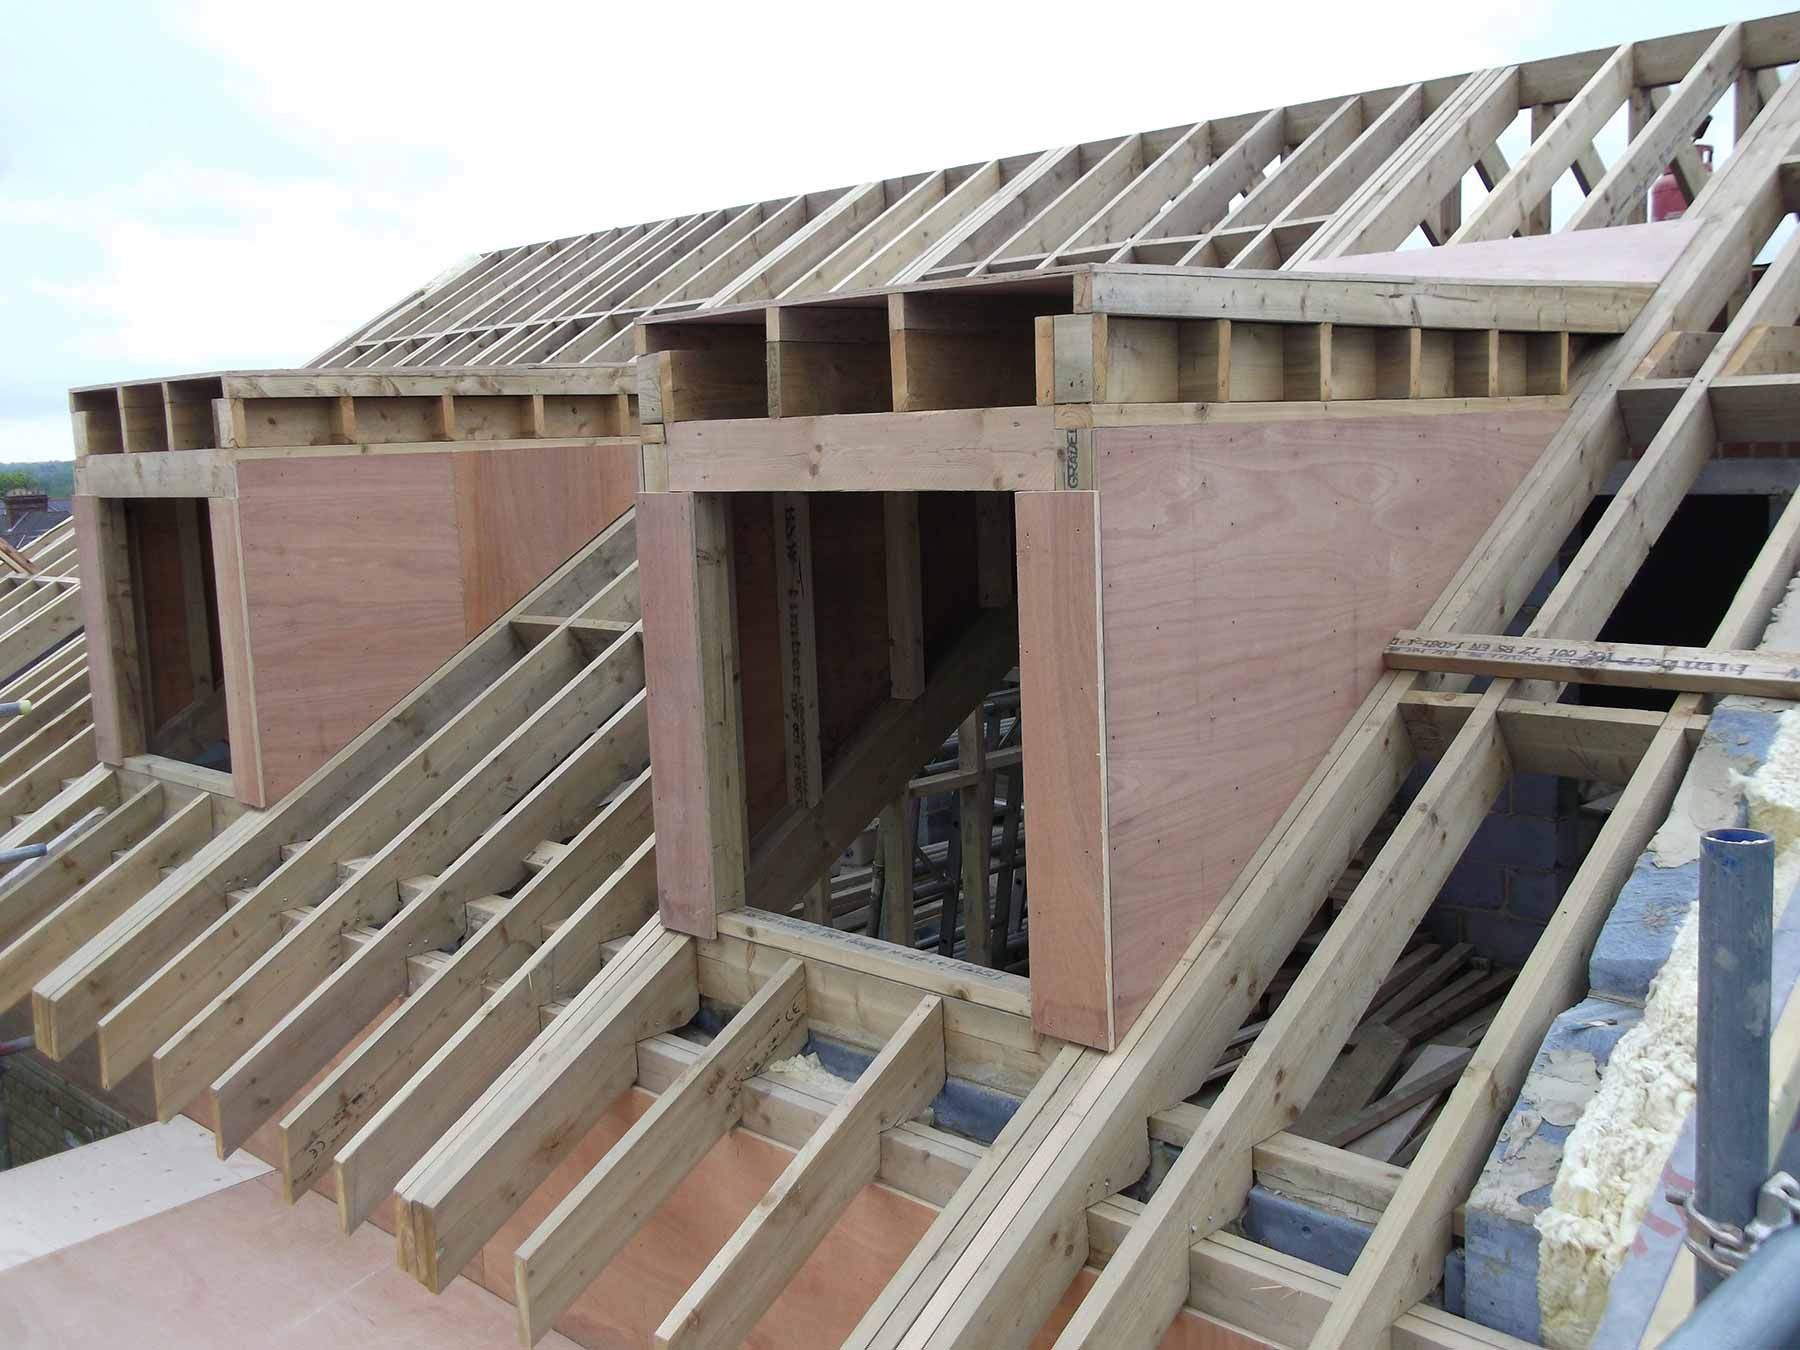 Loft conversion dormer with french doors google search for Dormer window construction drawings